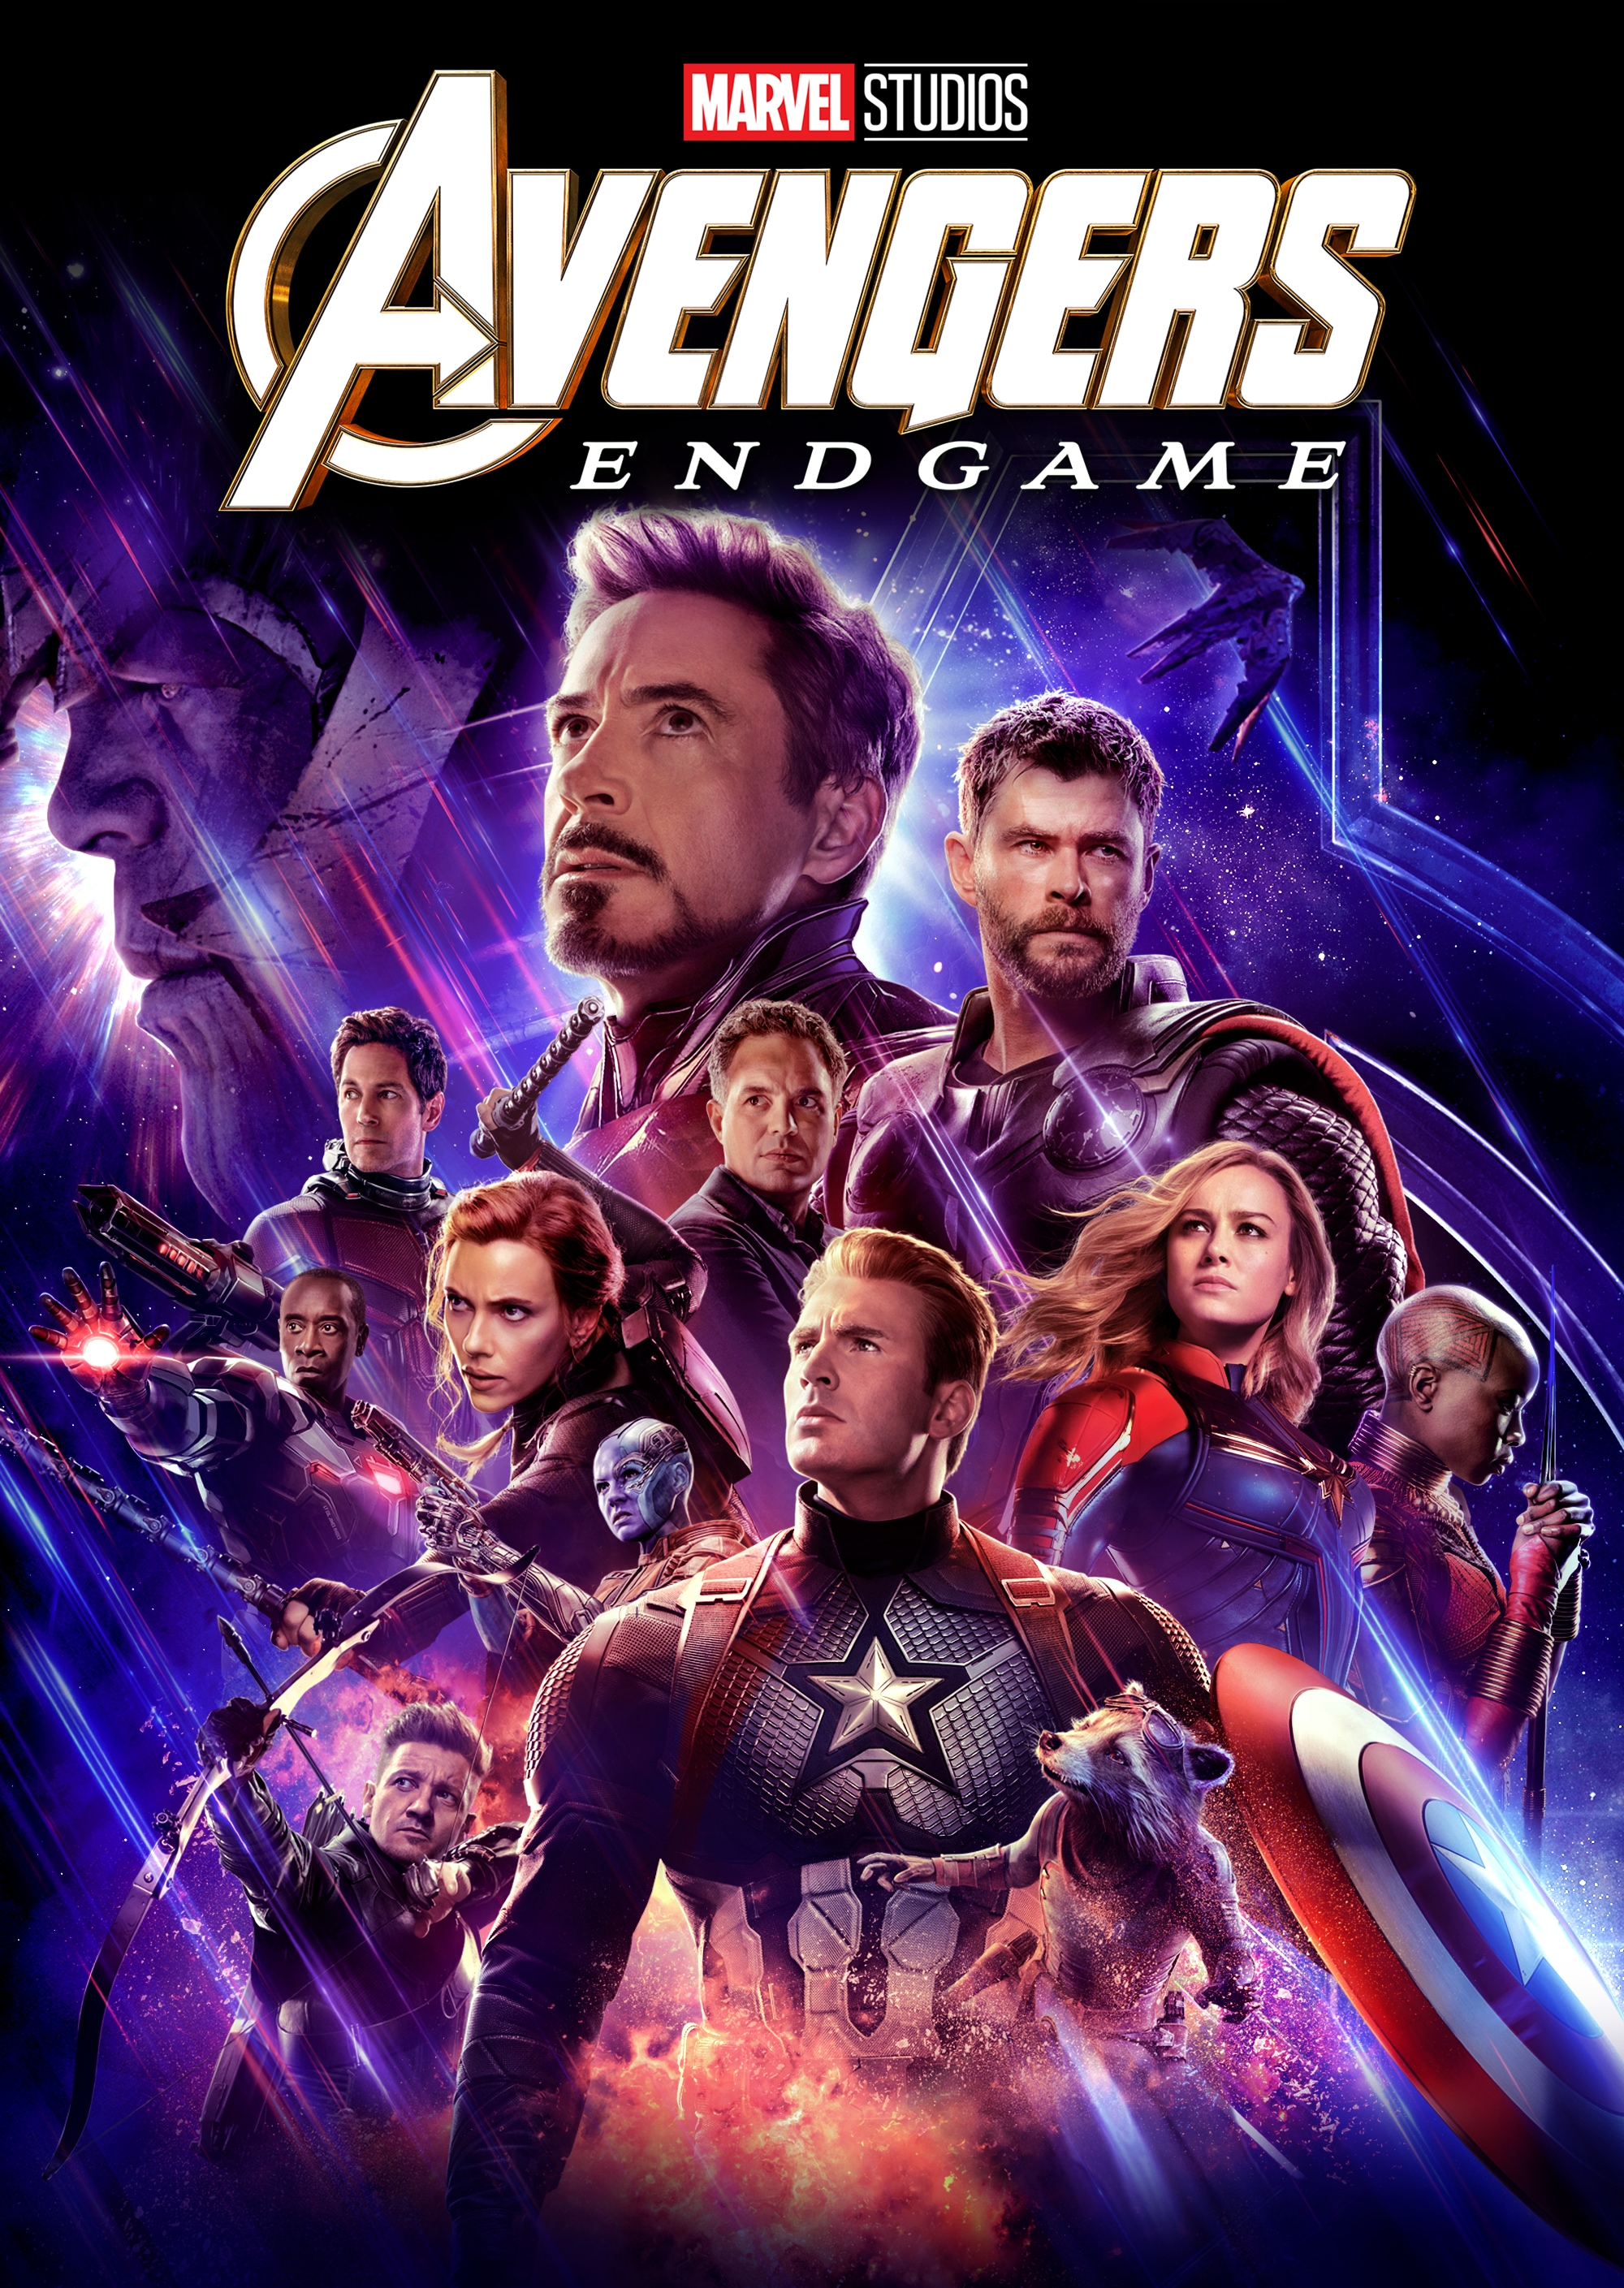 Avengers: End Game on Disney+